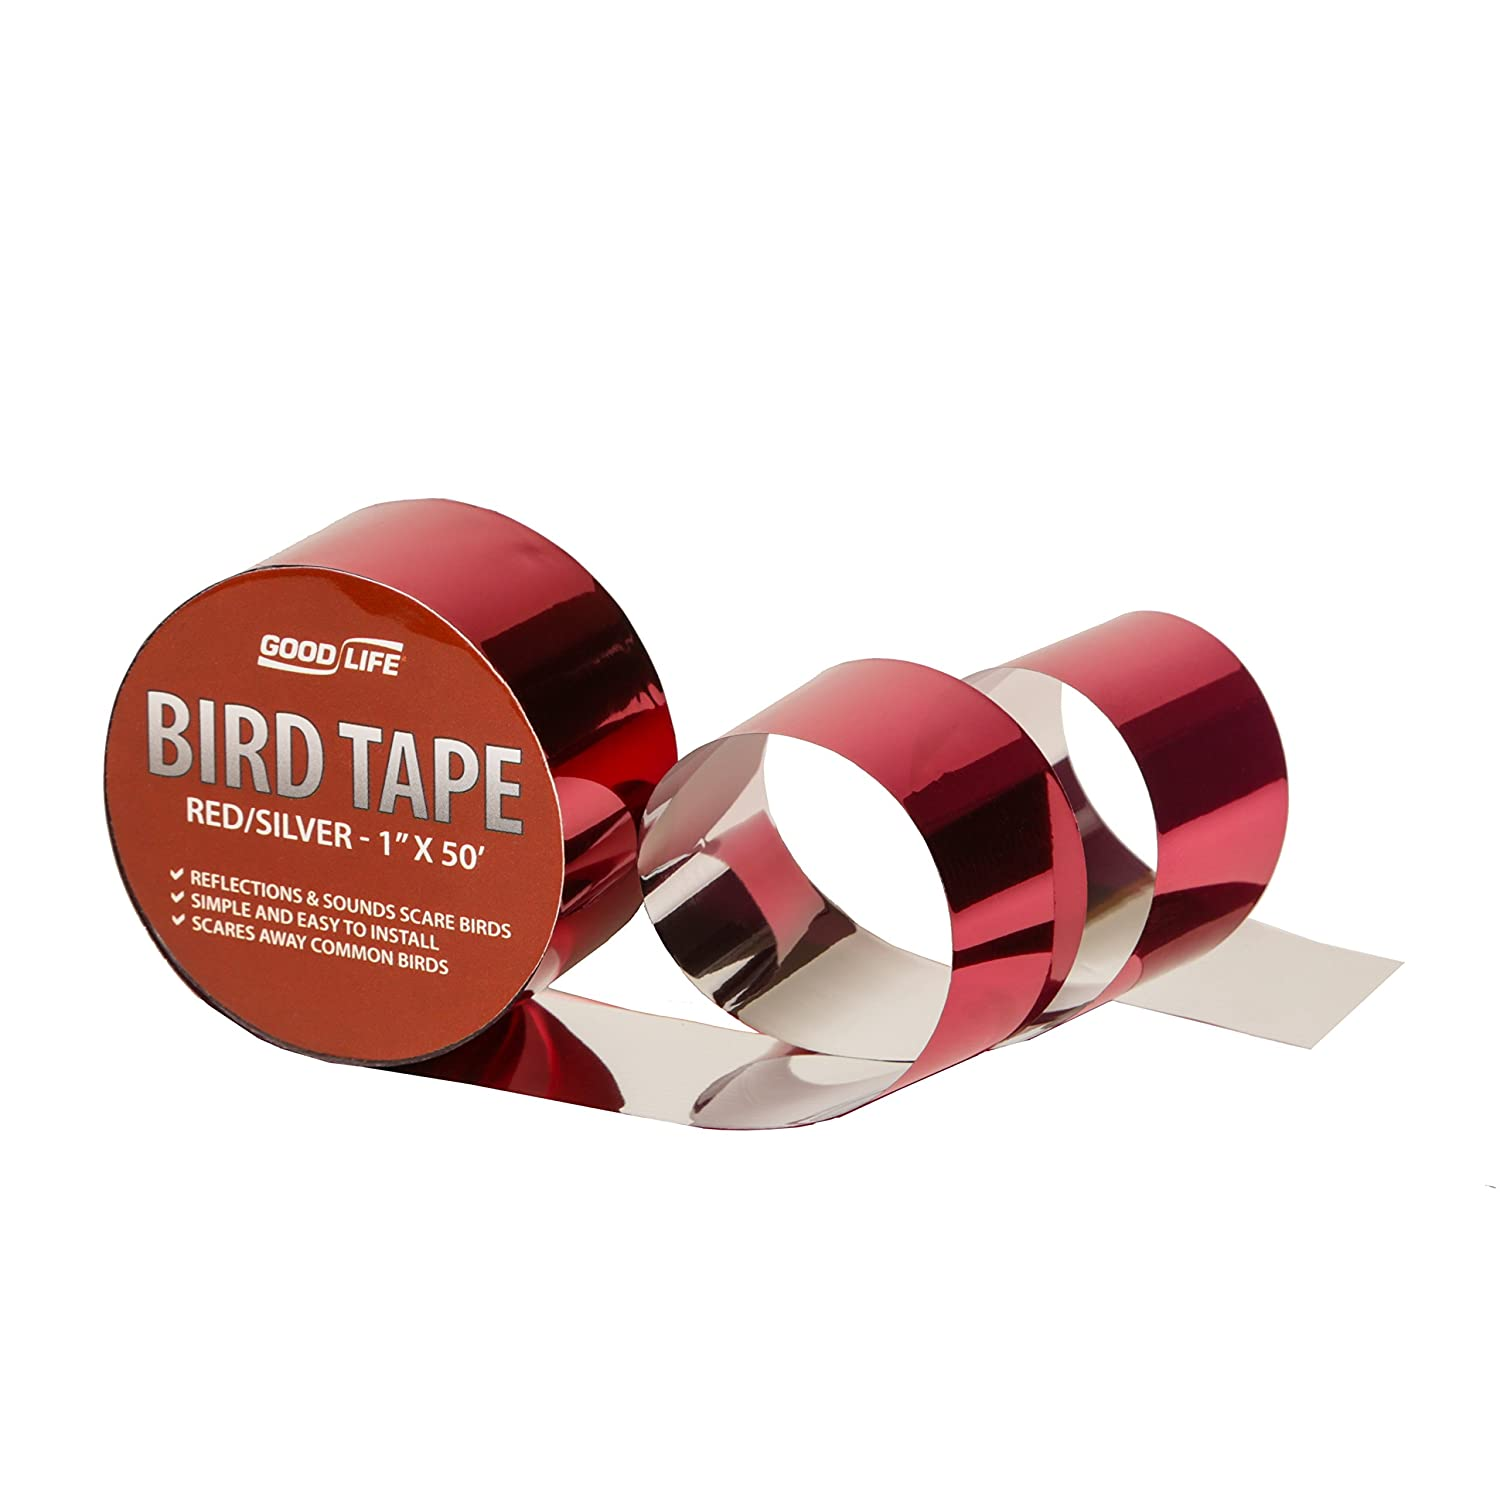 """Reflective Scare Tape: Holographic Bird Repellent Tape Safely Protects Your Property From Pest Birds (Red & Silver, 1""""x50"""